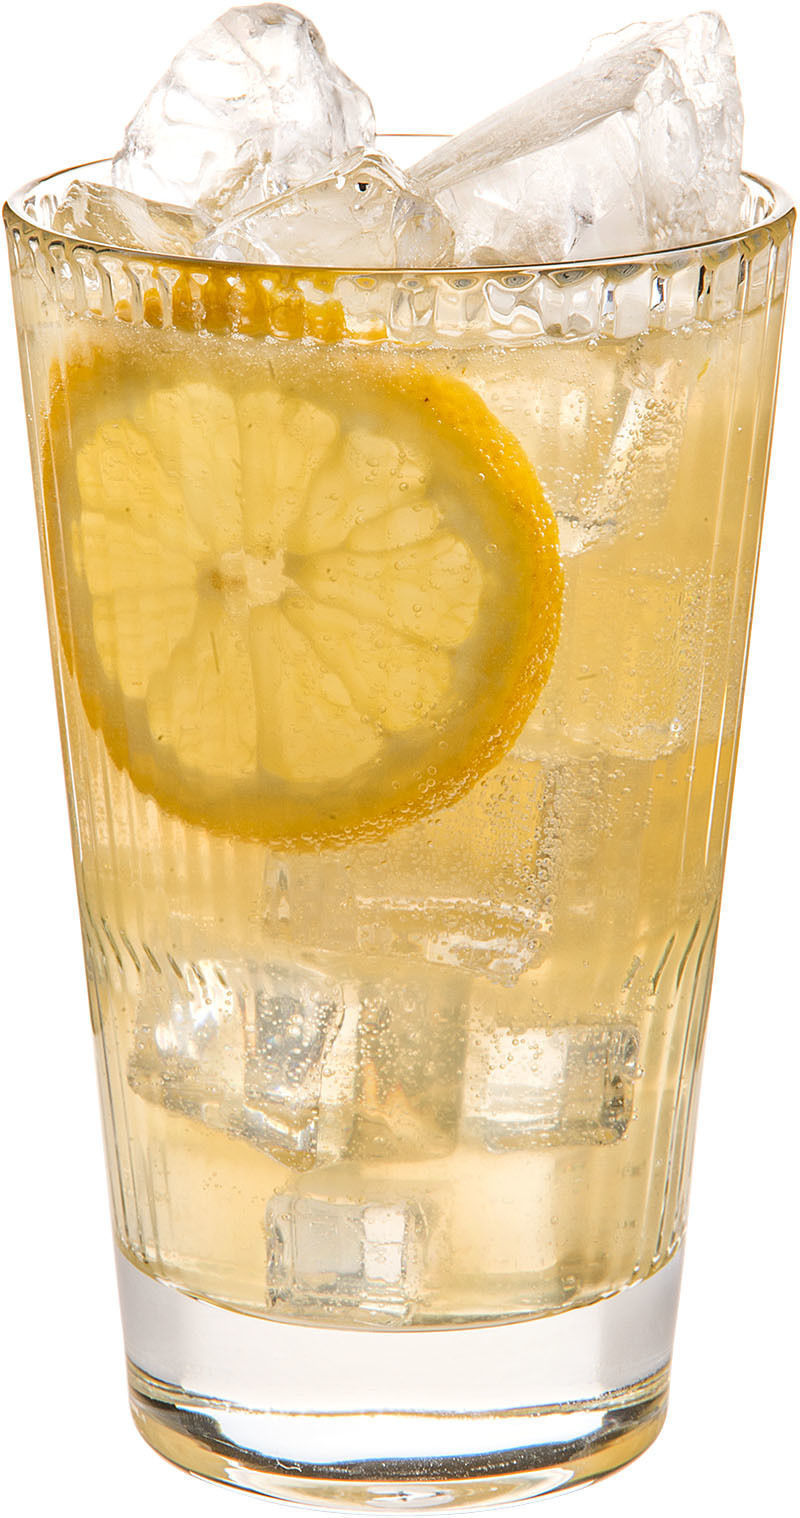 How to Make the Citrus Highball